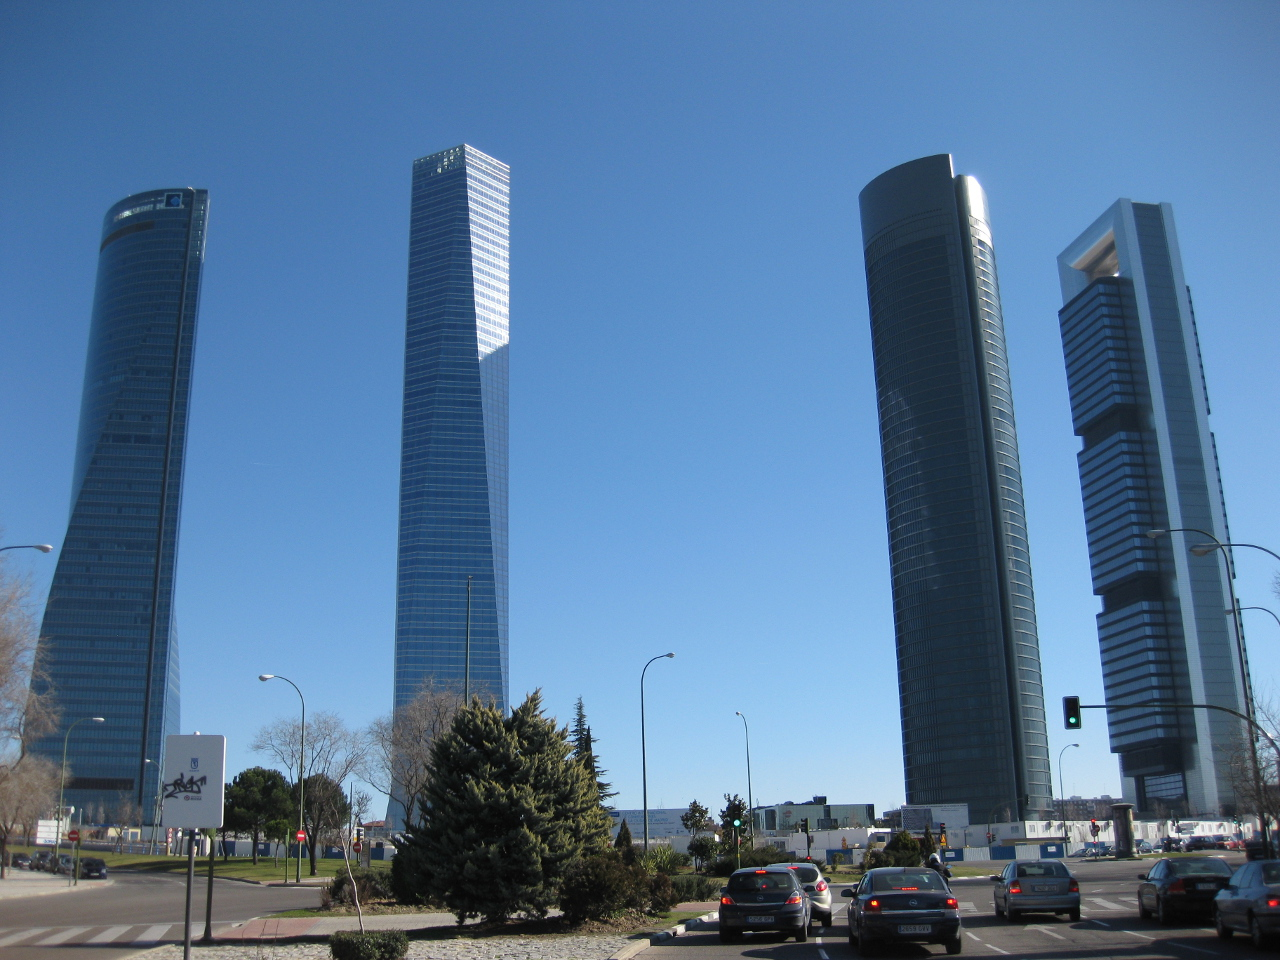 Madrid's Cuatro Torres (Four Towers) Business Area